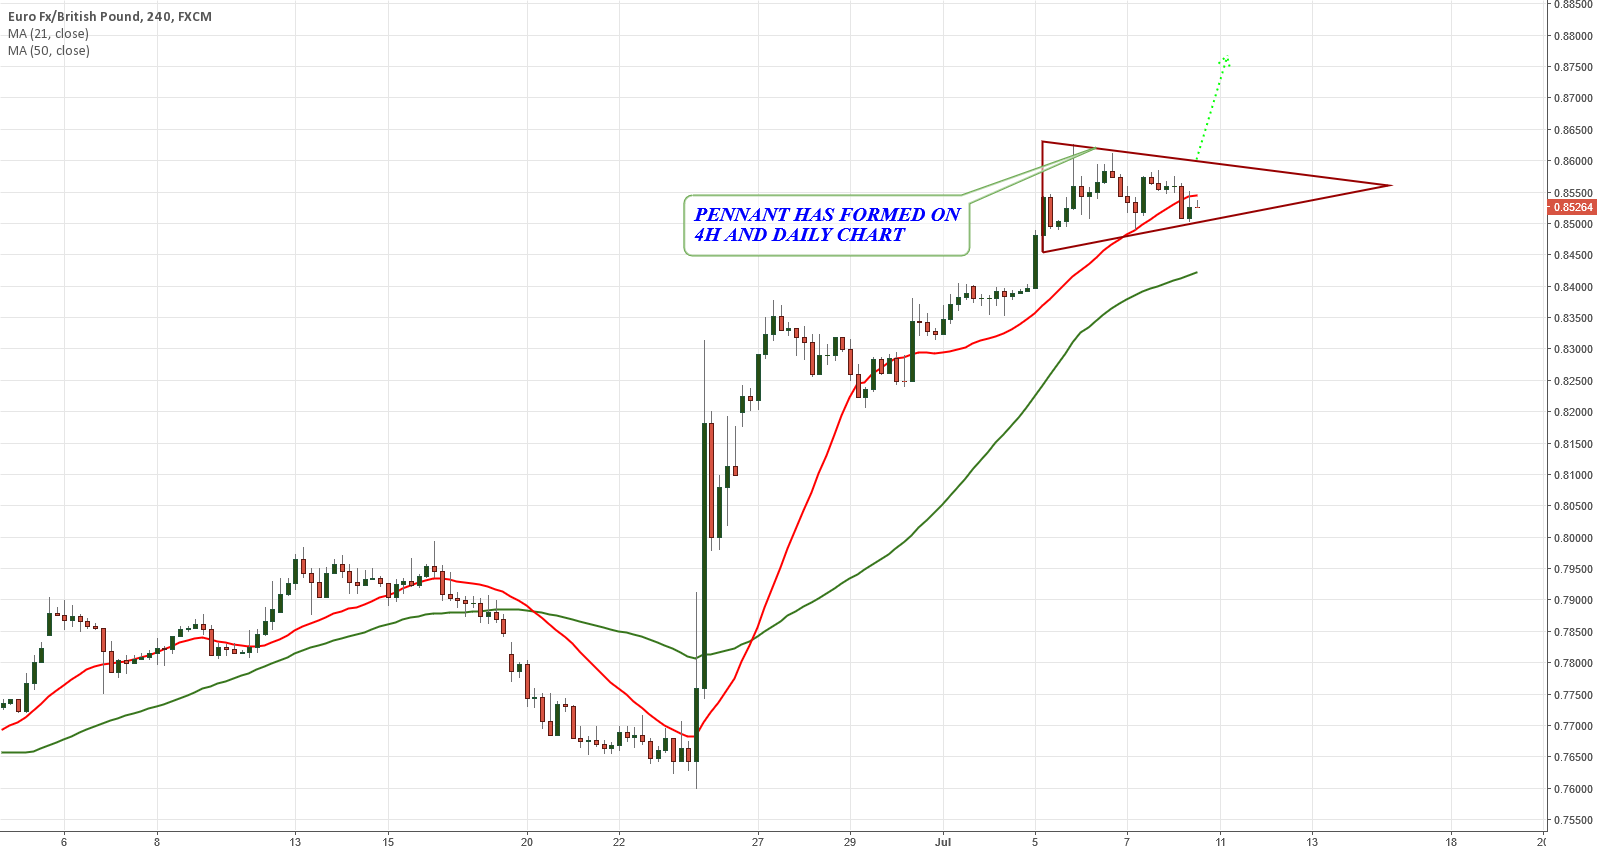 EURGBP PENNANT ON 4H AND DAILY CHART